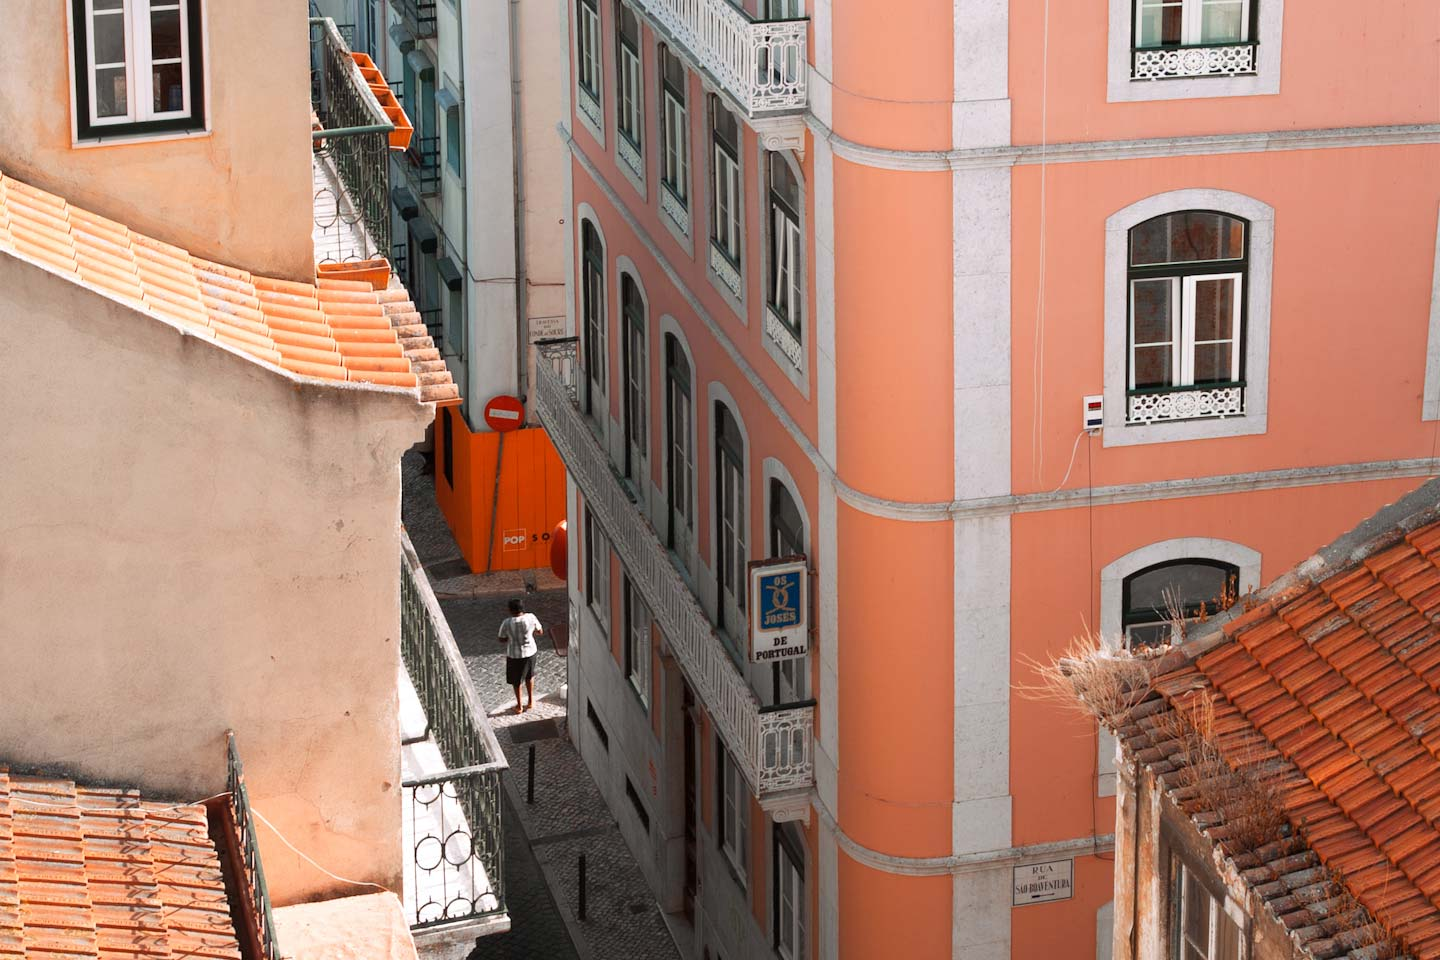 Portugal,_View_out_Lisbon_window-1.jpg